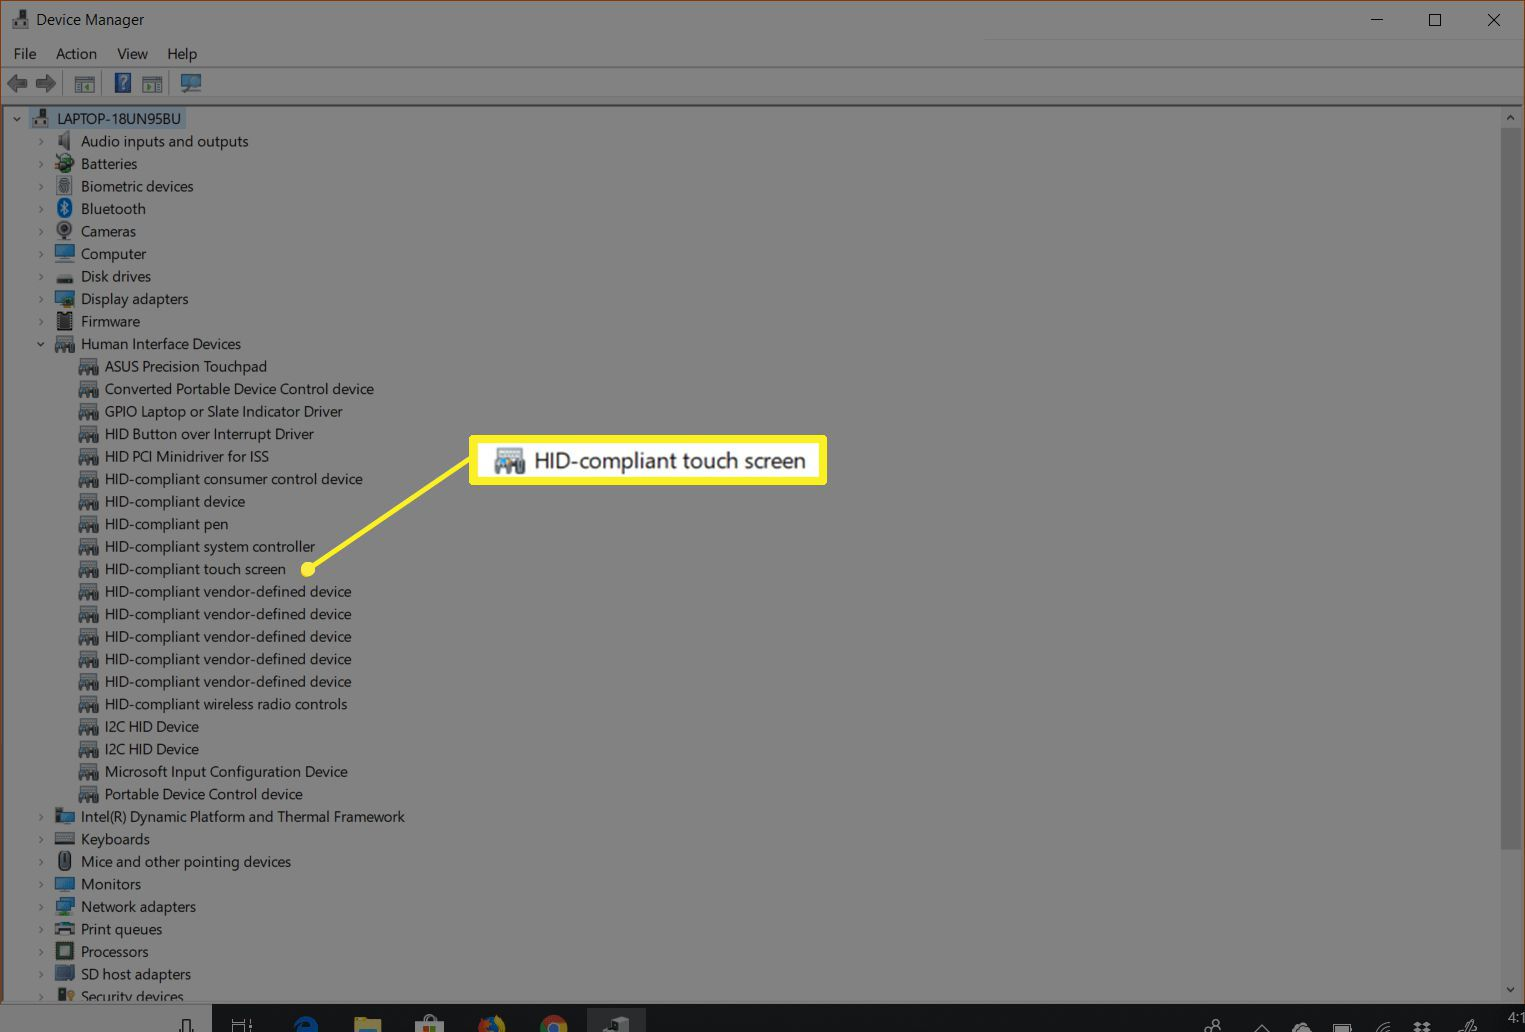 HID-compliant touch screen item in Device Manager